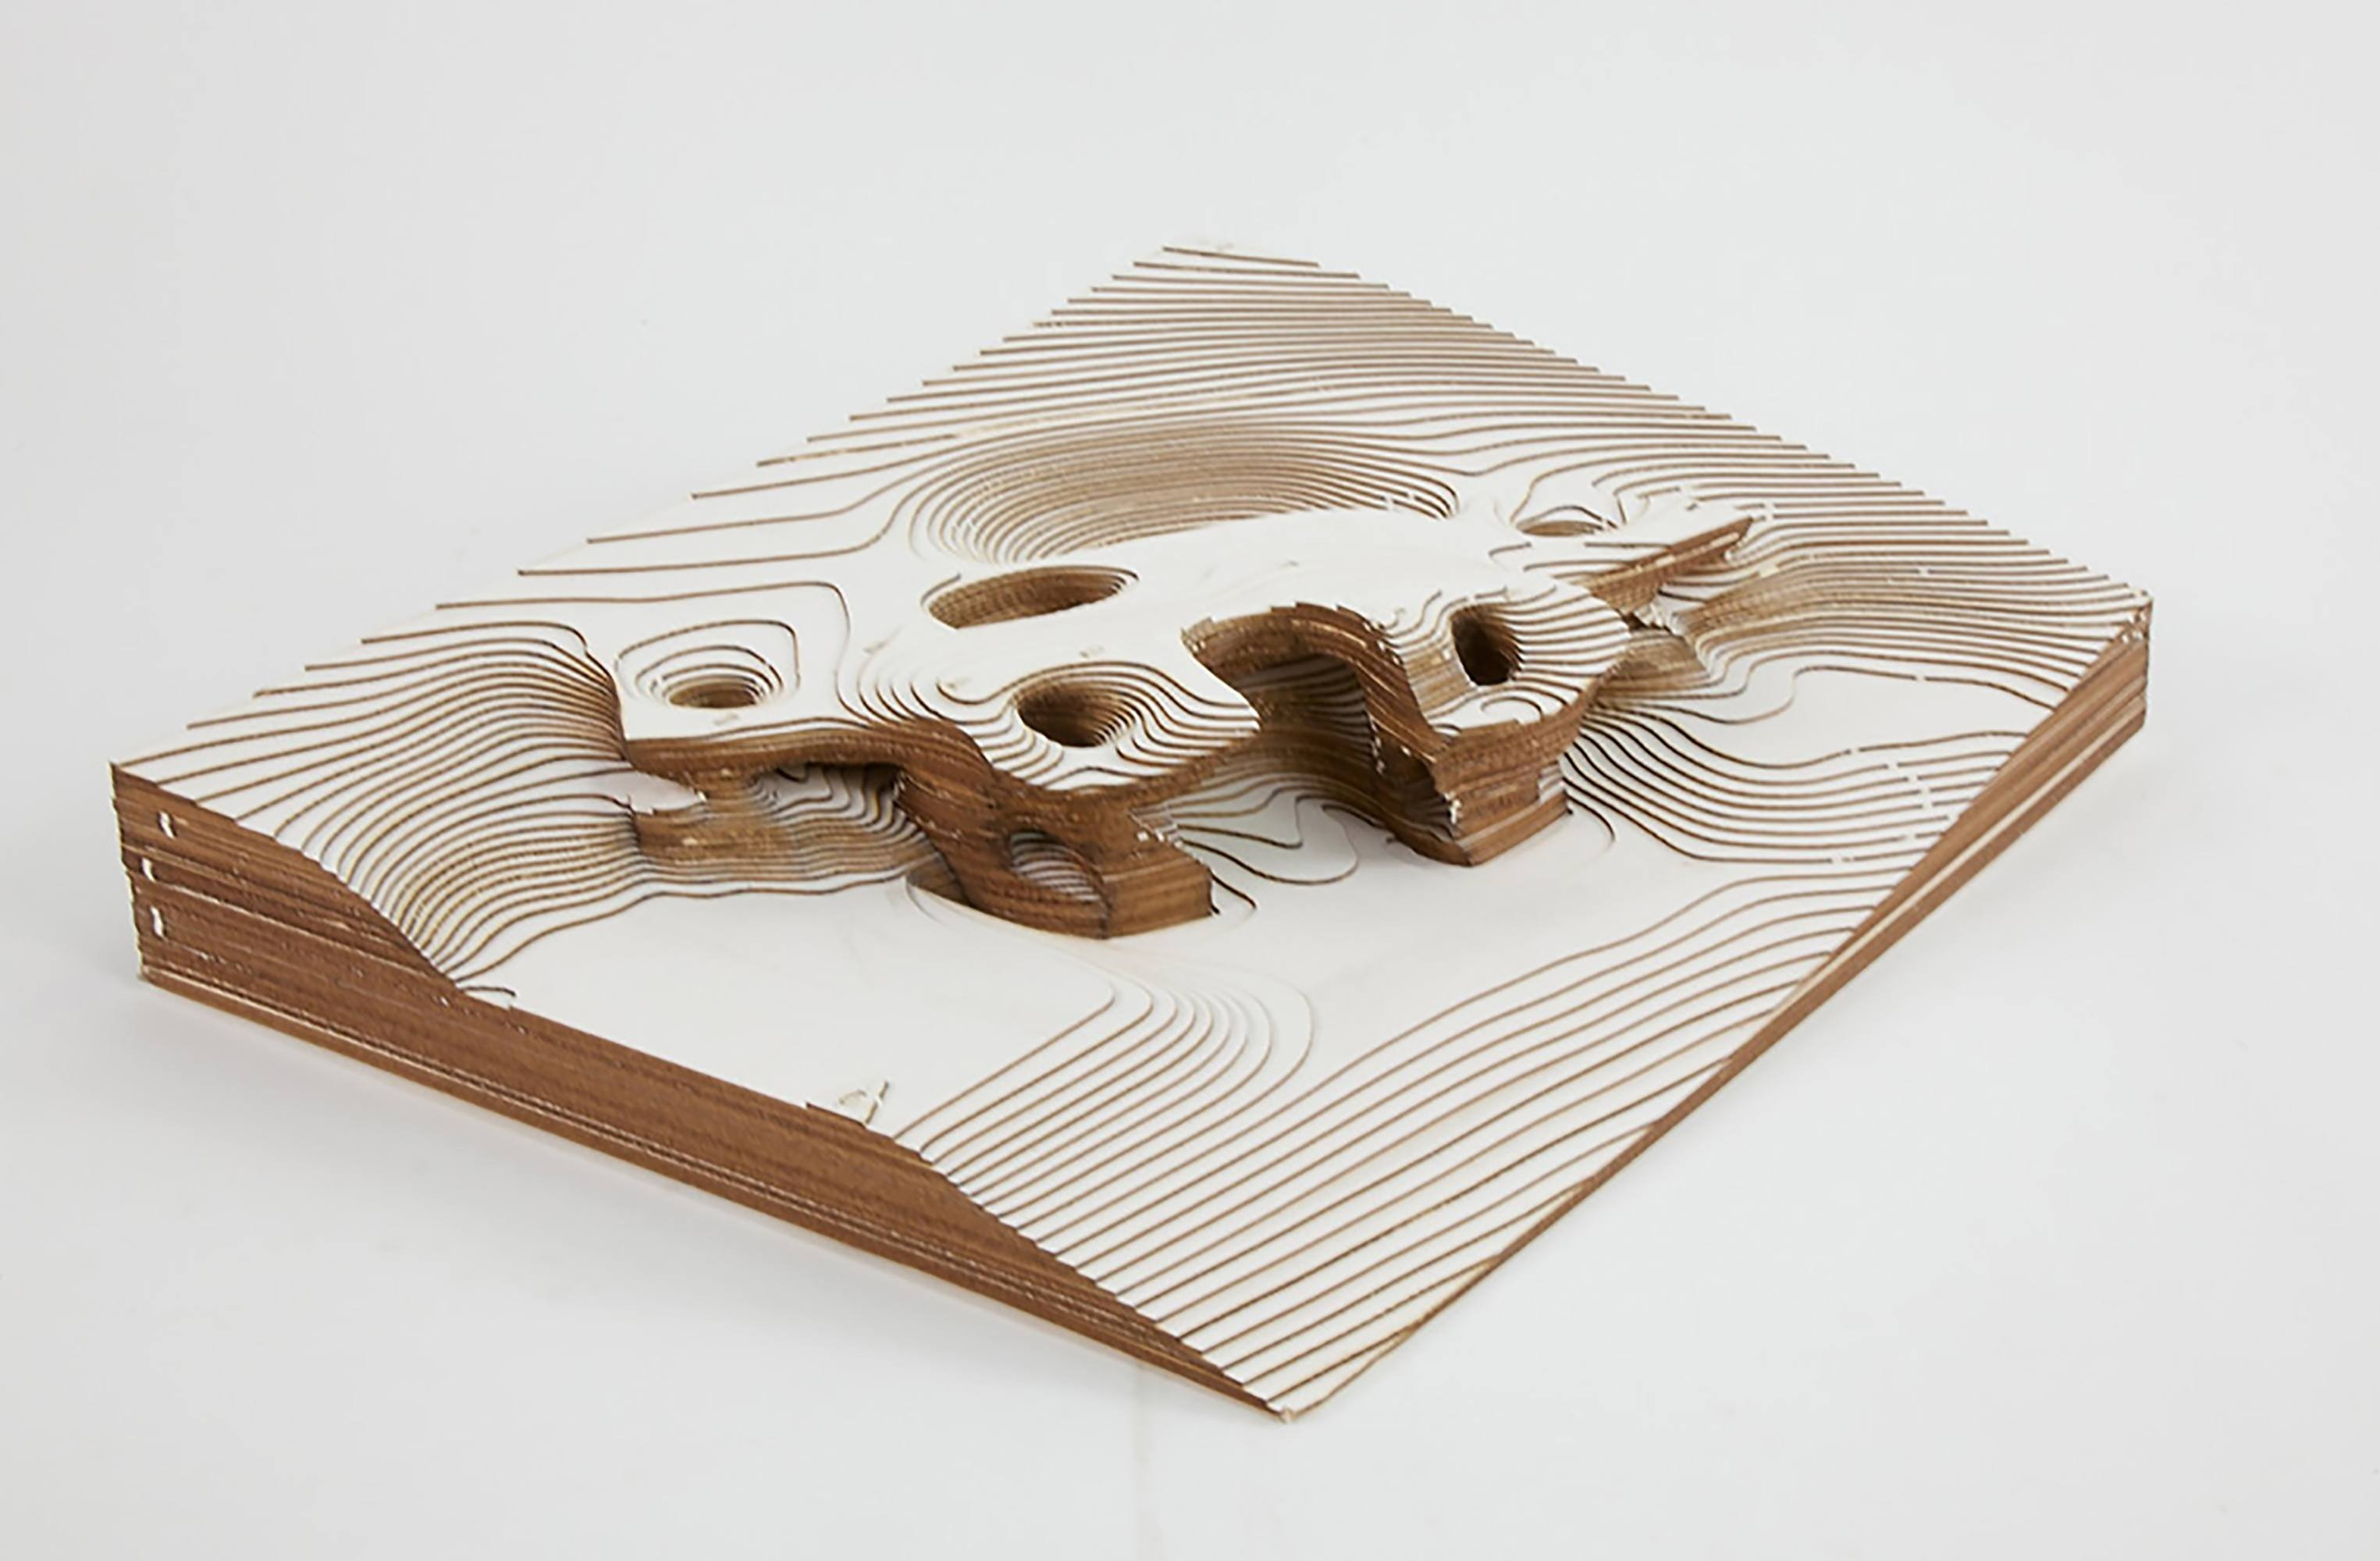 Topographical model front